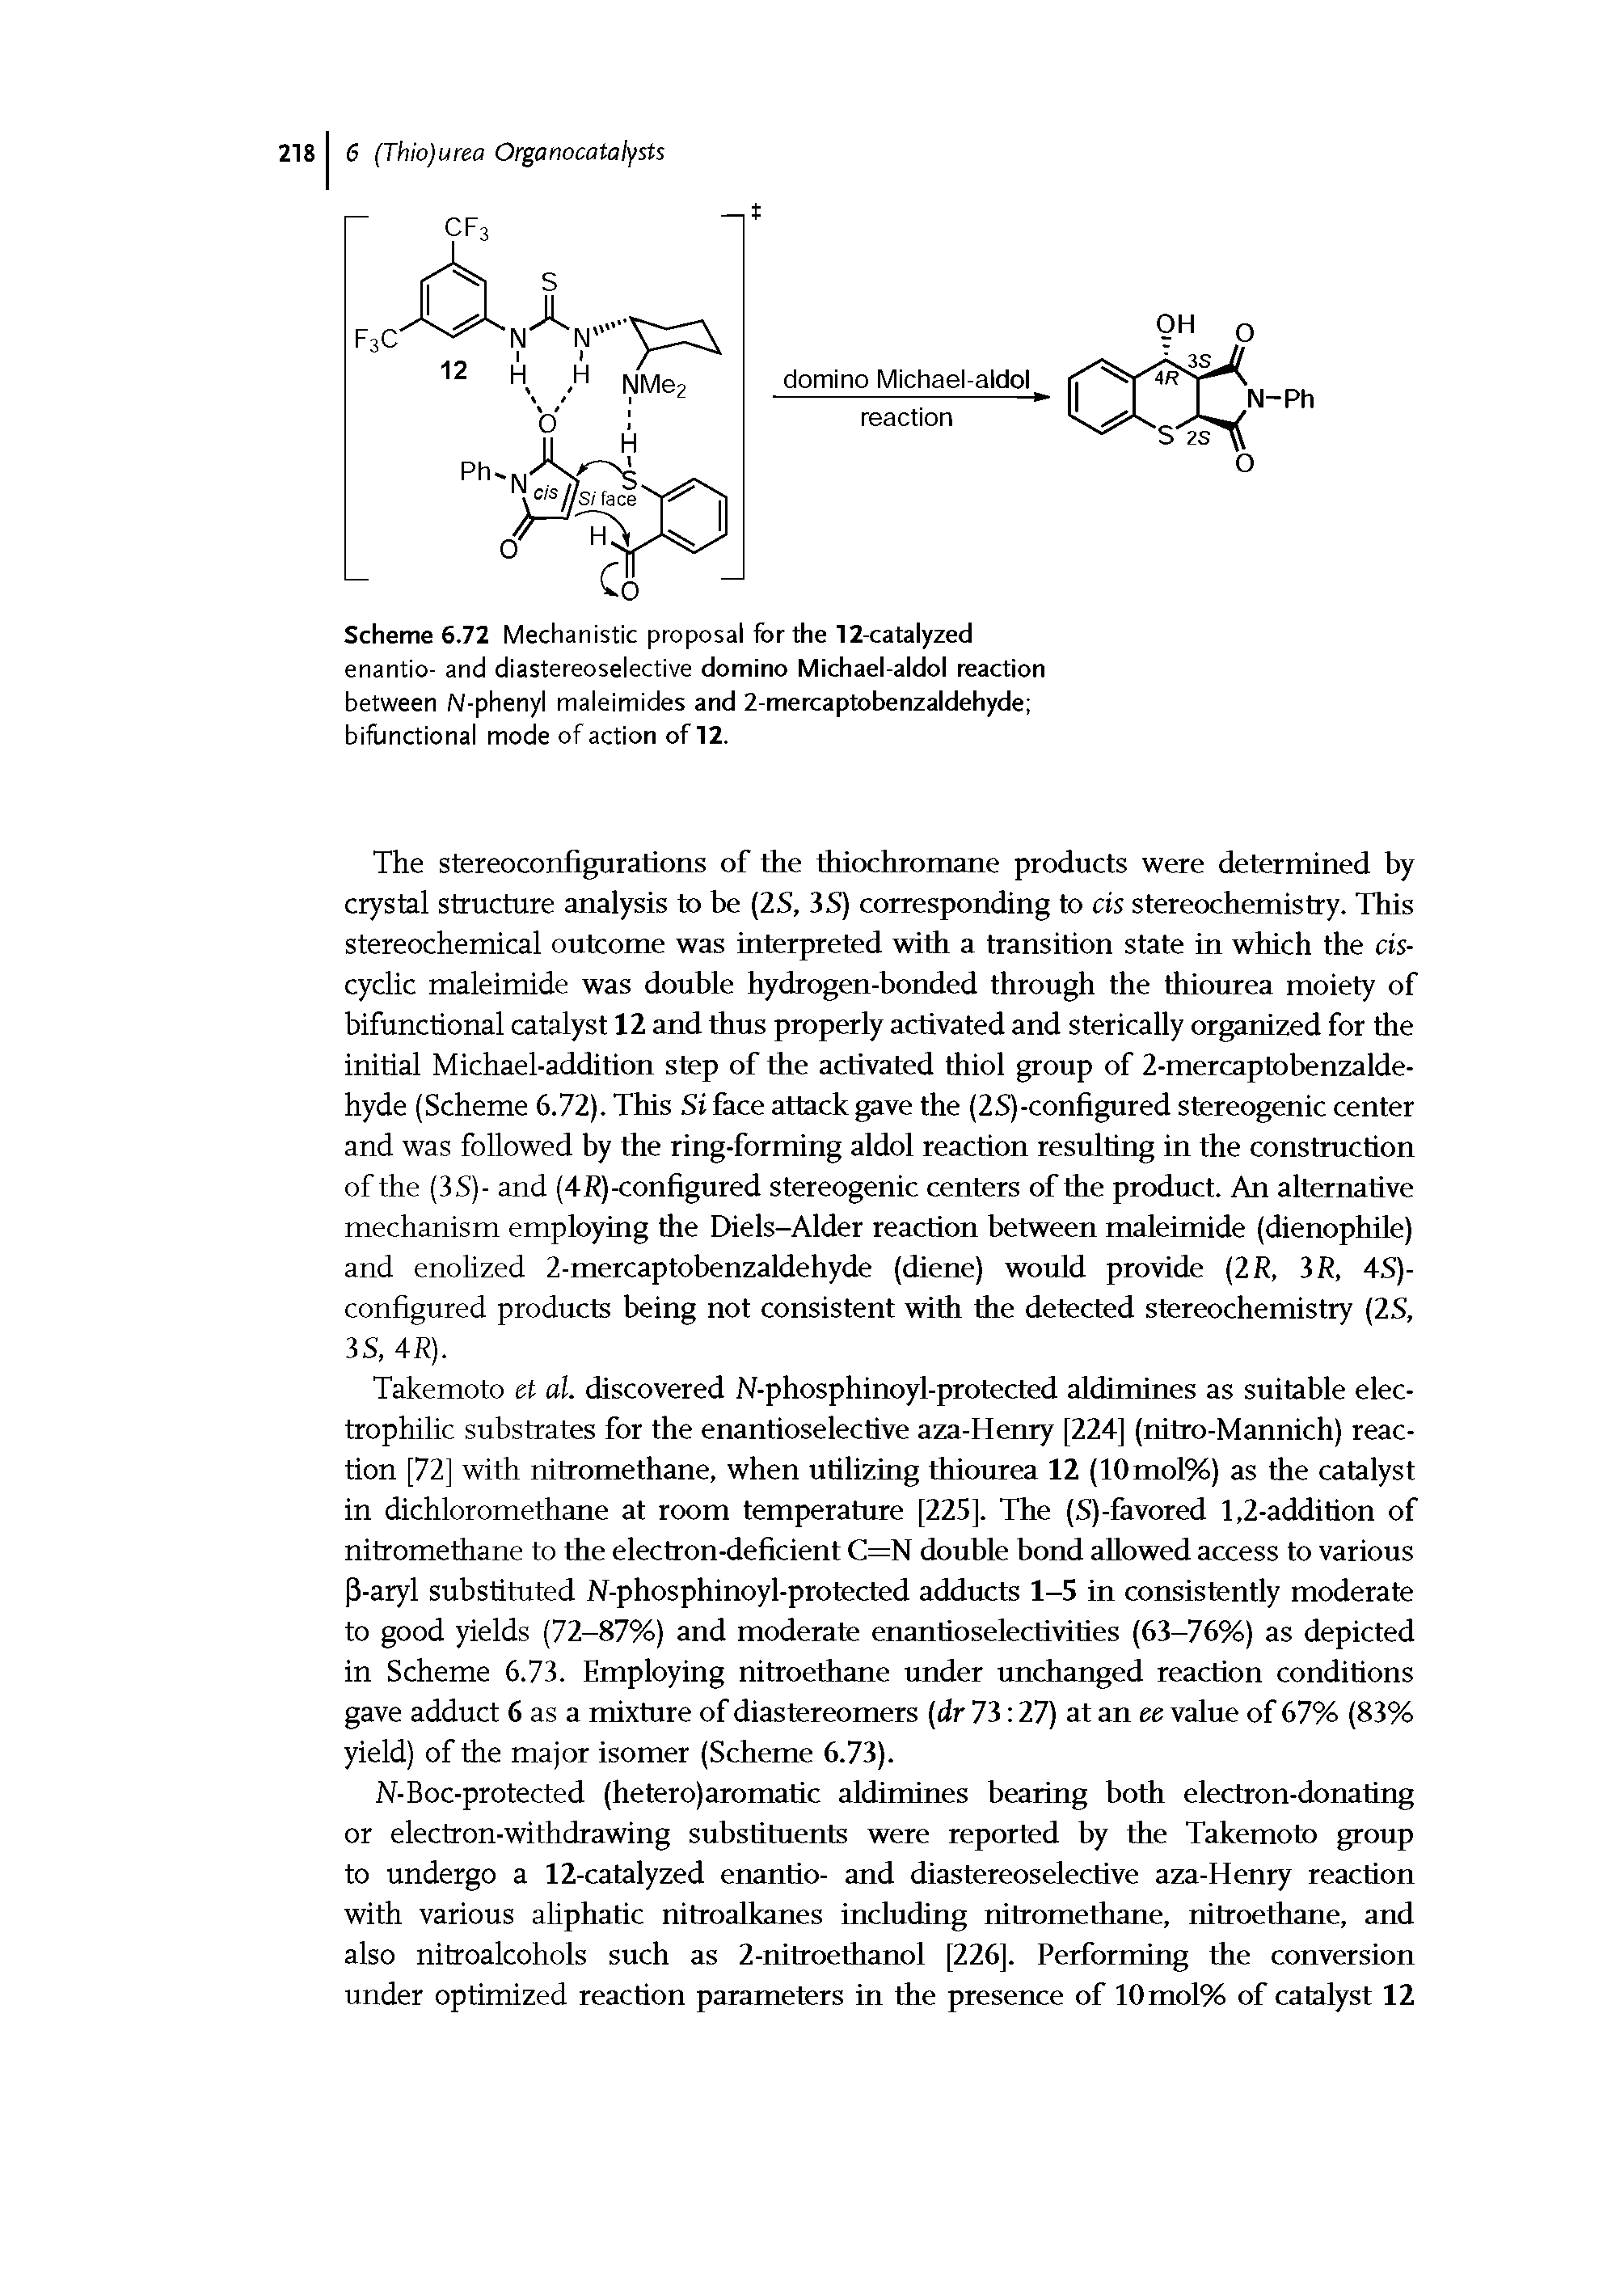 "Scheme 6.72 Mechanistic proposal for the 12-catalyzed enantio- and diastereoselective <a href=""/info/domino_michael_aldol_reaction"">domino Michael-aldol reaction</a> between N-<a href=""/info/iv_phenyl_maleimide"">phenyl maleimides</a> and 2-mercaptobenzaldehyde bifunctional mode of action of 12."